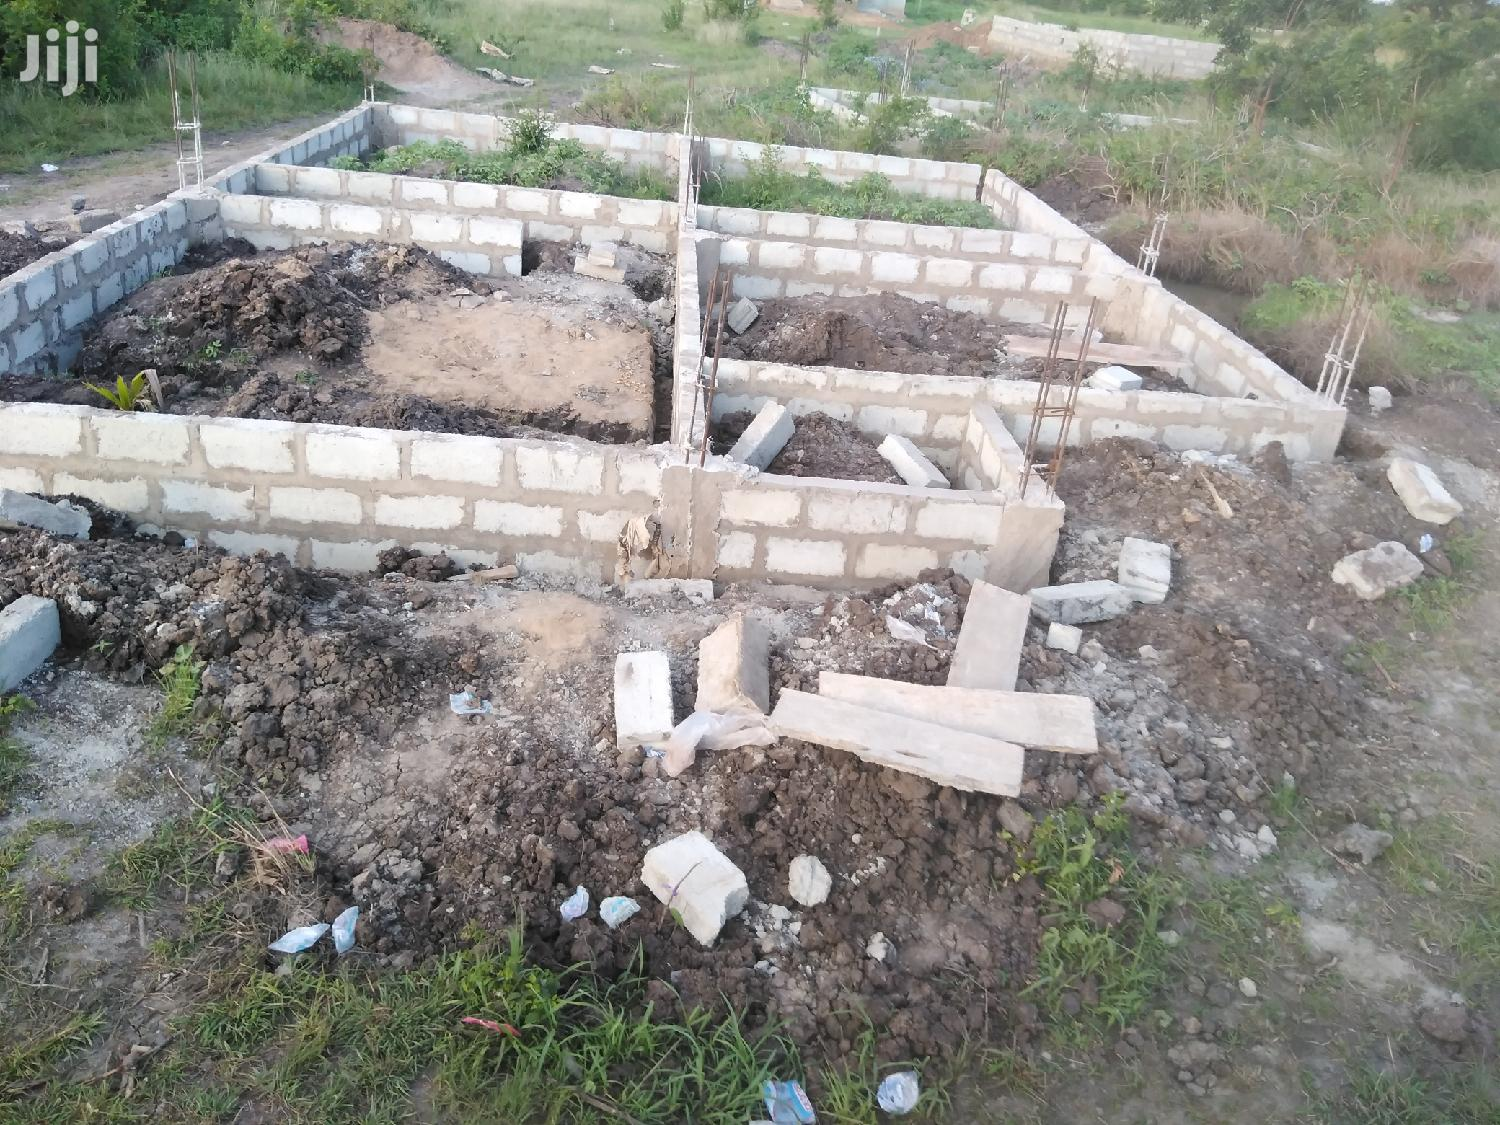 Half Plot Available In Appolonia | Land & Plots for Rent for sale in Tema Metropolitan, Greater Accra, Ghana